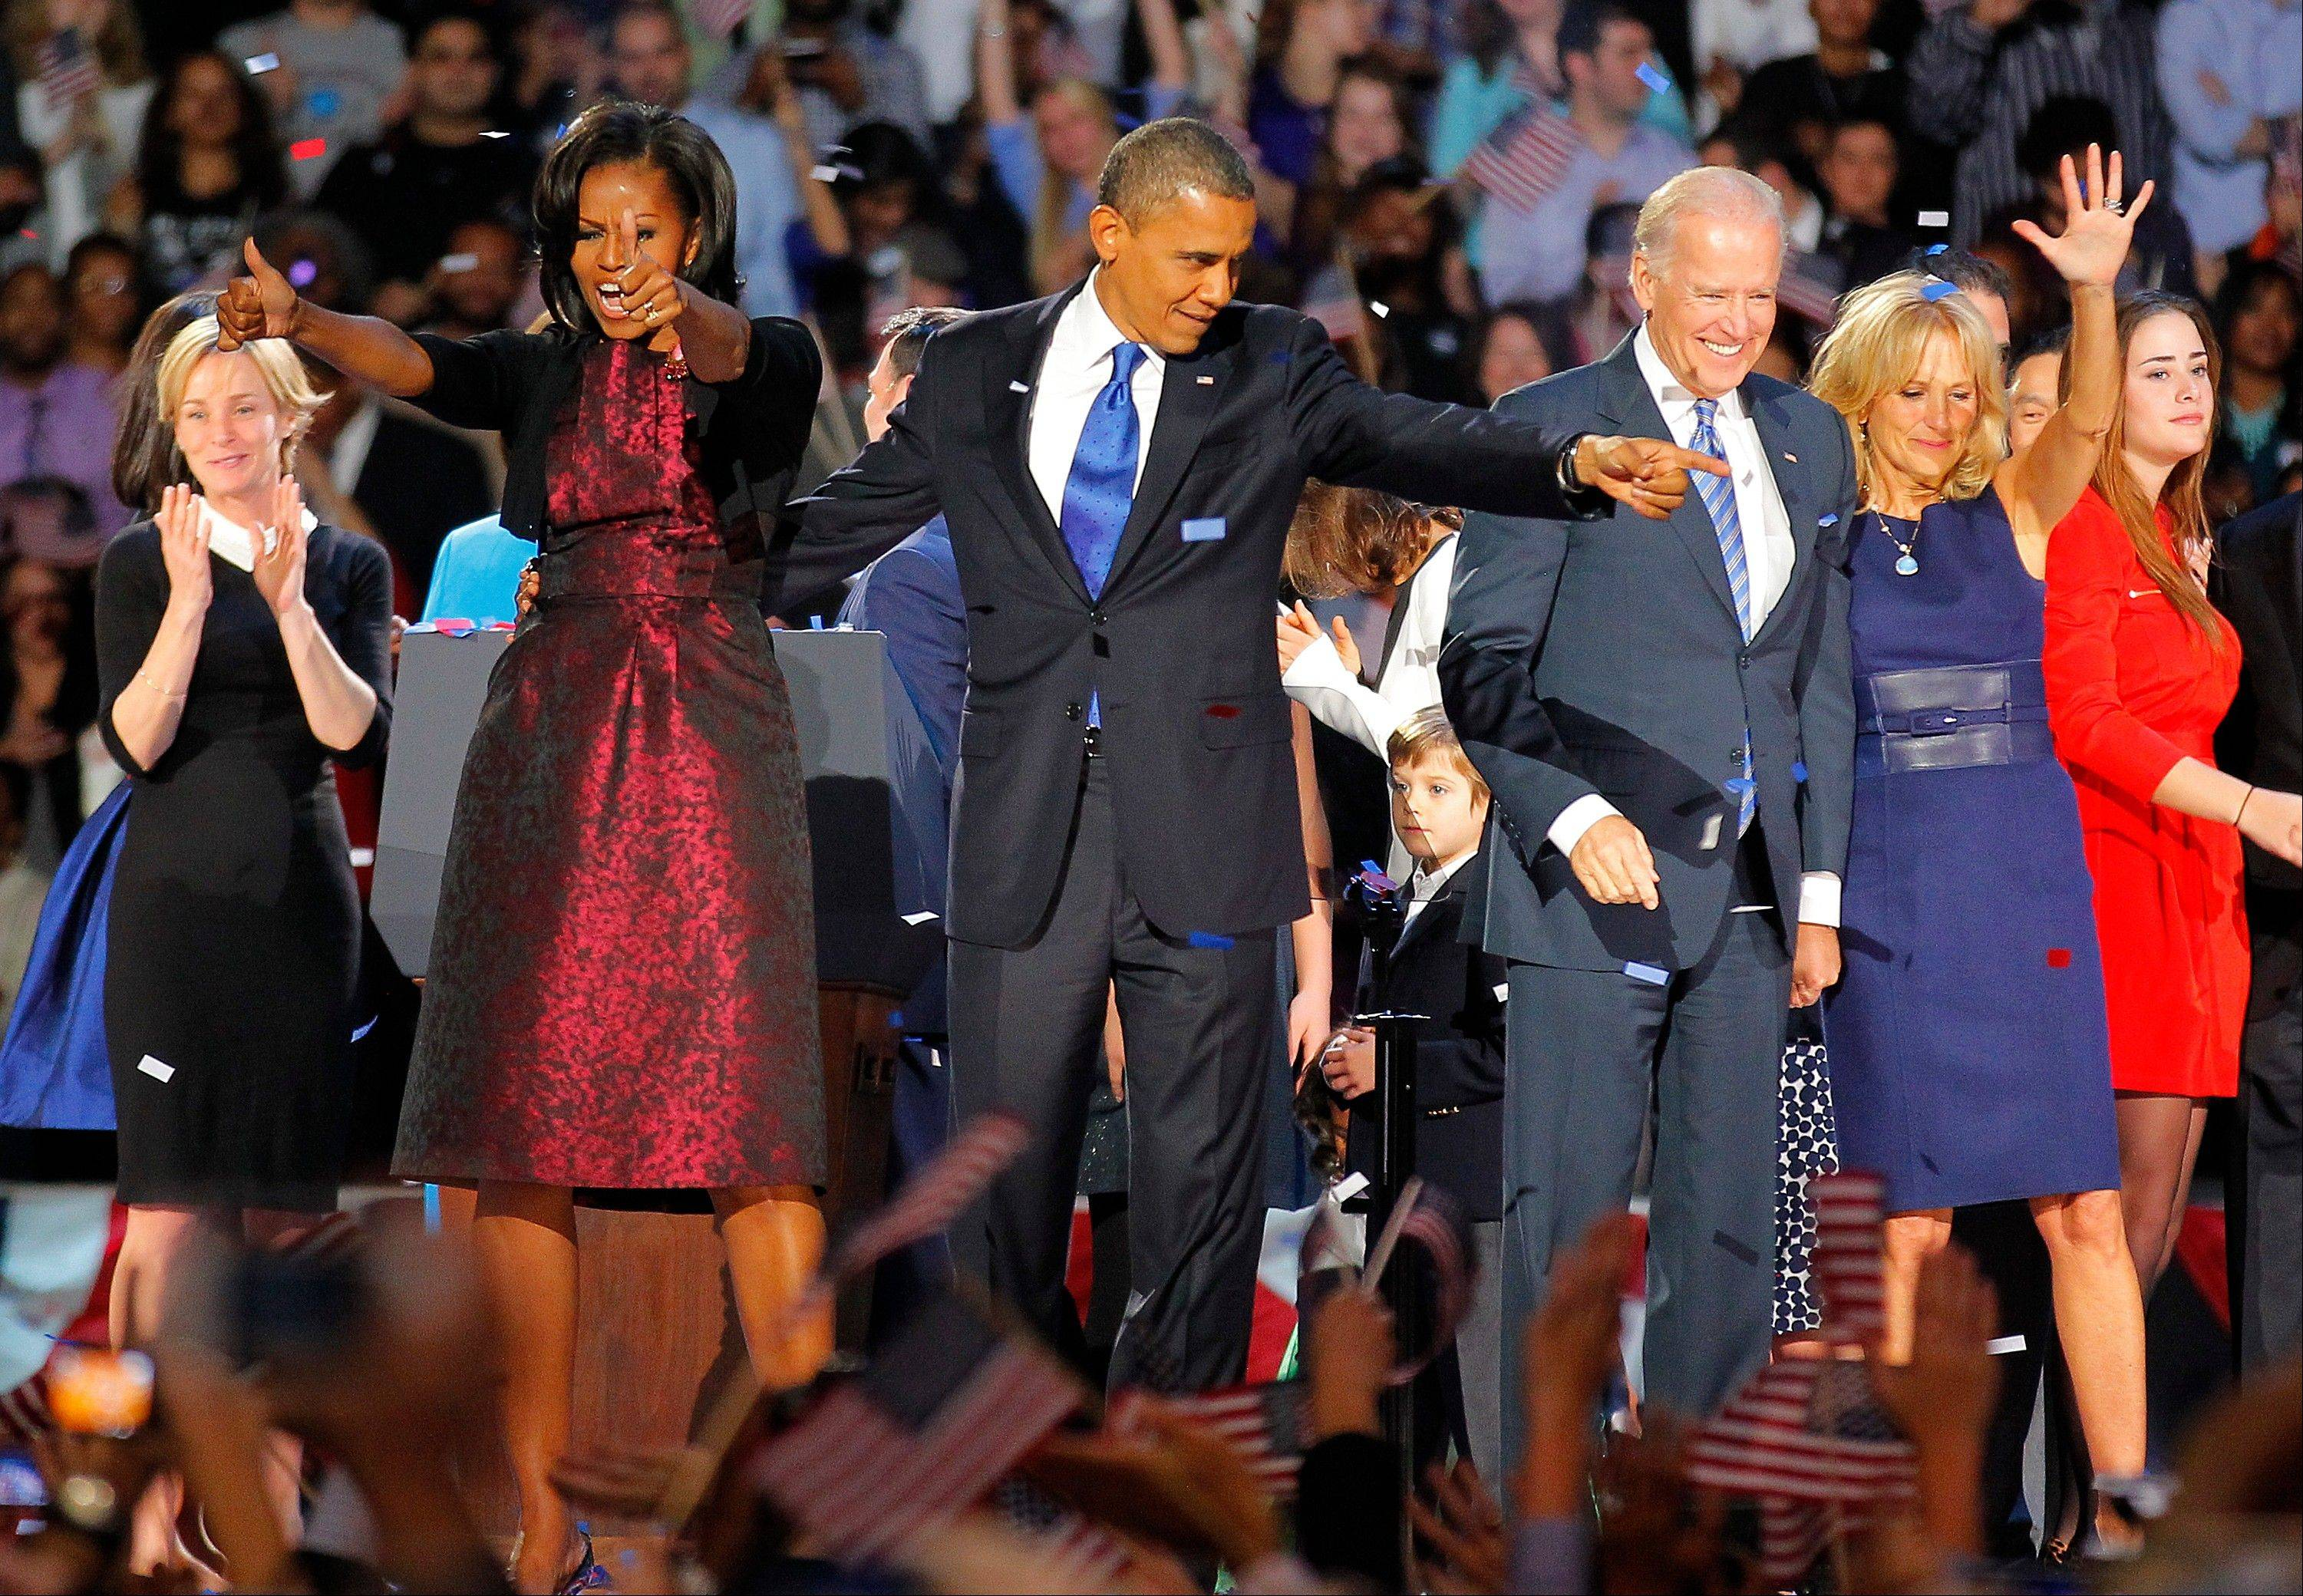 President Barack Obama, joined by his wife Michelle, Vice President Joe Biden and his spouse Jill acknowledge applause after Obama delivered his victory speech to supporters gathered in Chicago early Wednesday.